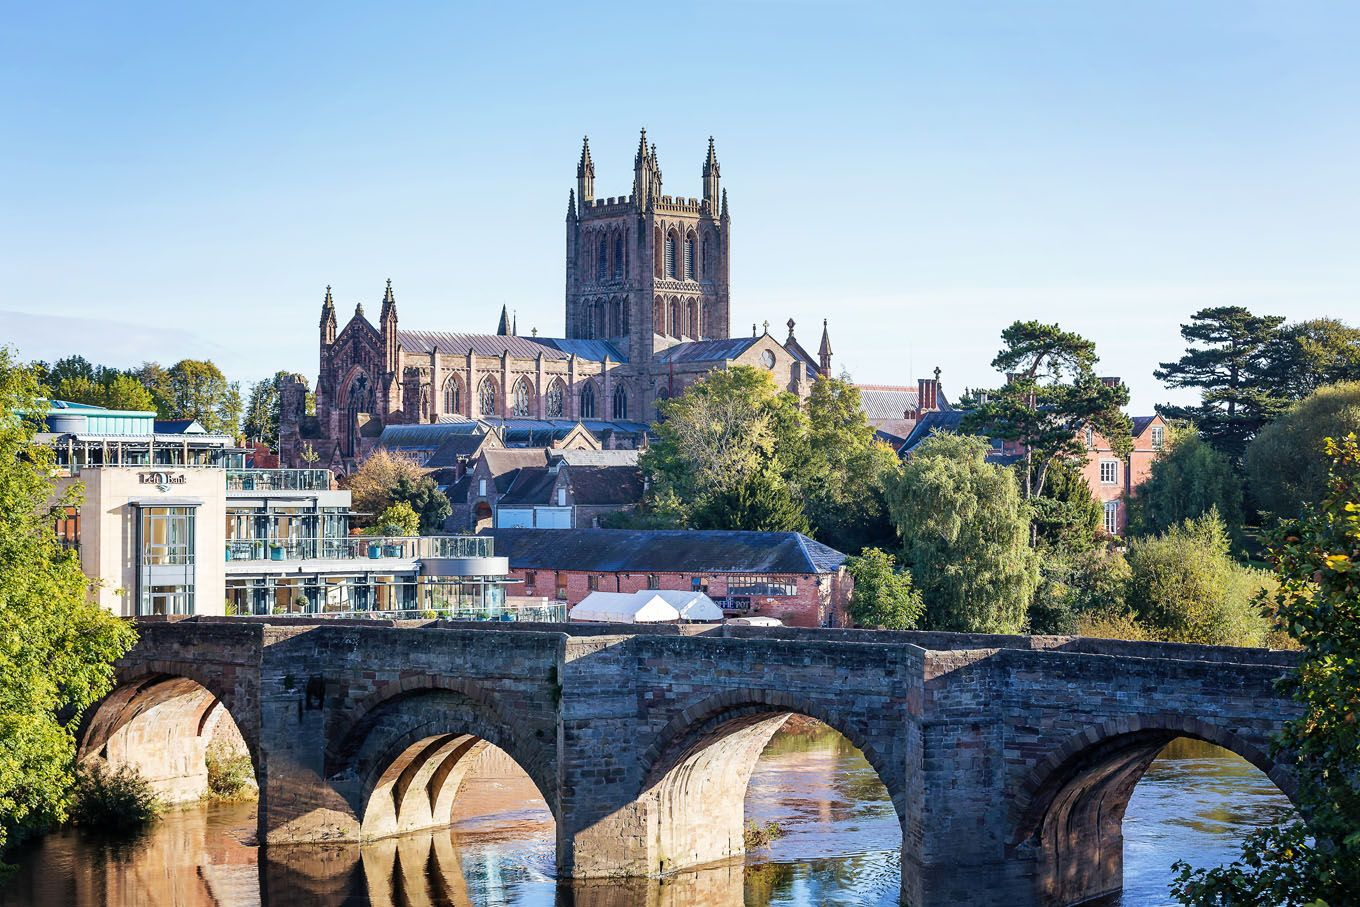 City of Hereford with Cathedral in the background